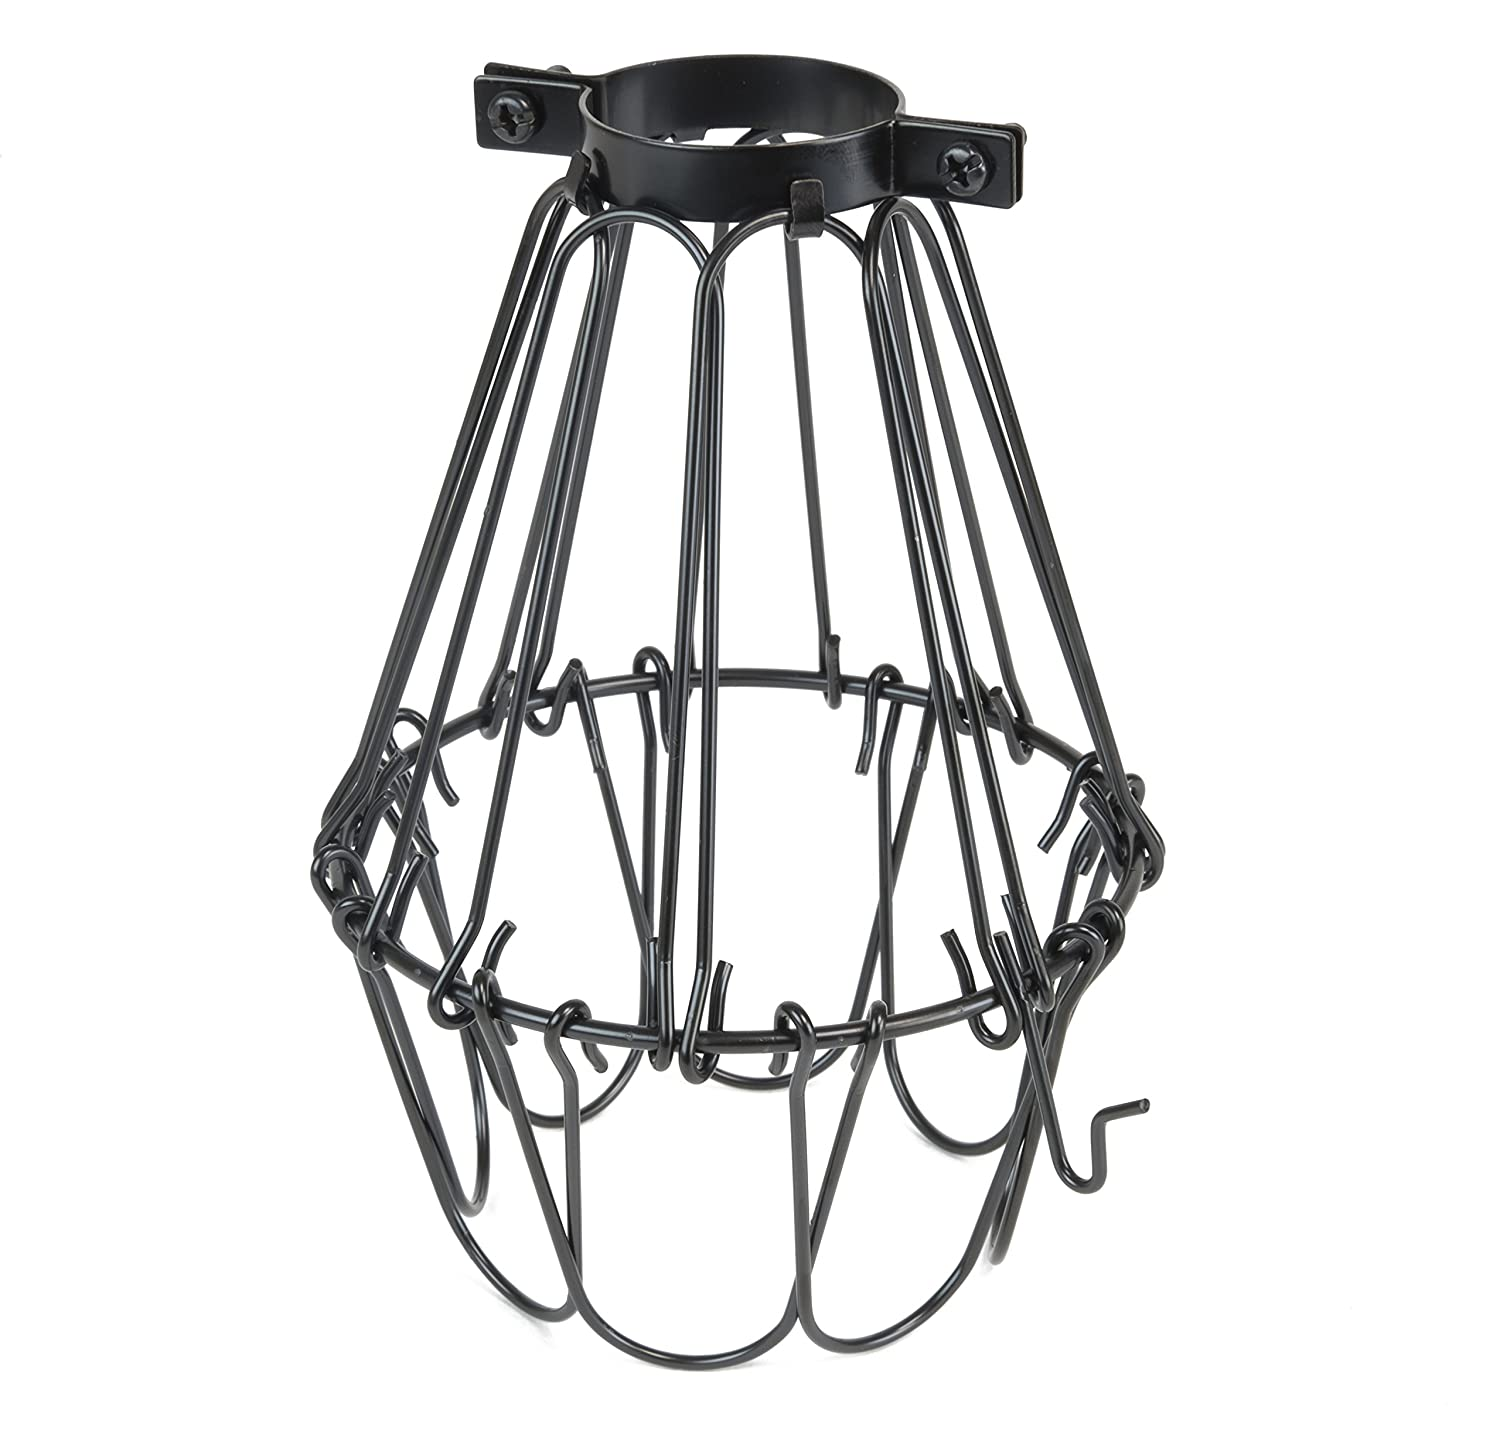 Sturdy construction metal wire cage light fixture set 15 vintage sturdy construction metal wire cage light fixture set 15 vintage fabric cord toggle switch and radio style edison bulb in black amazon arubaitofo Images